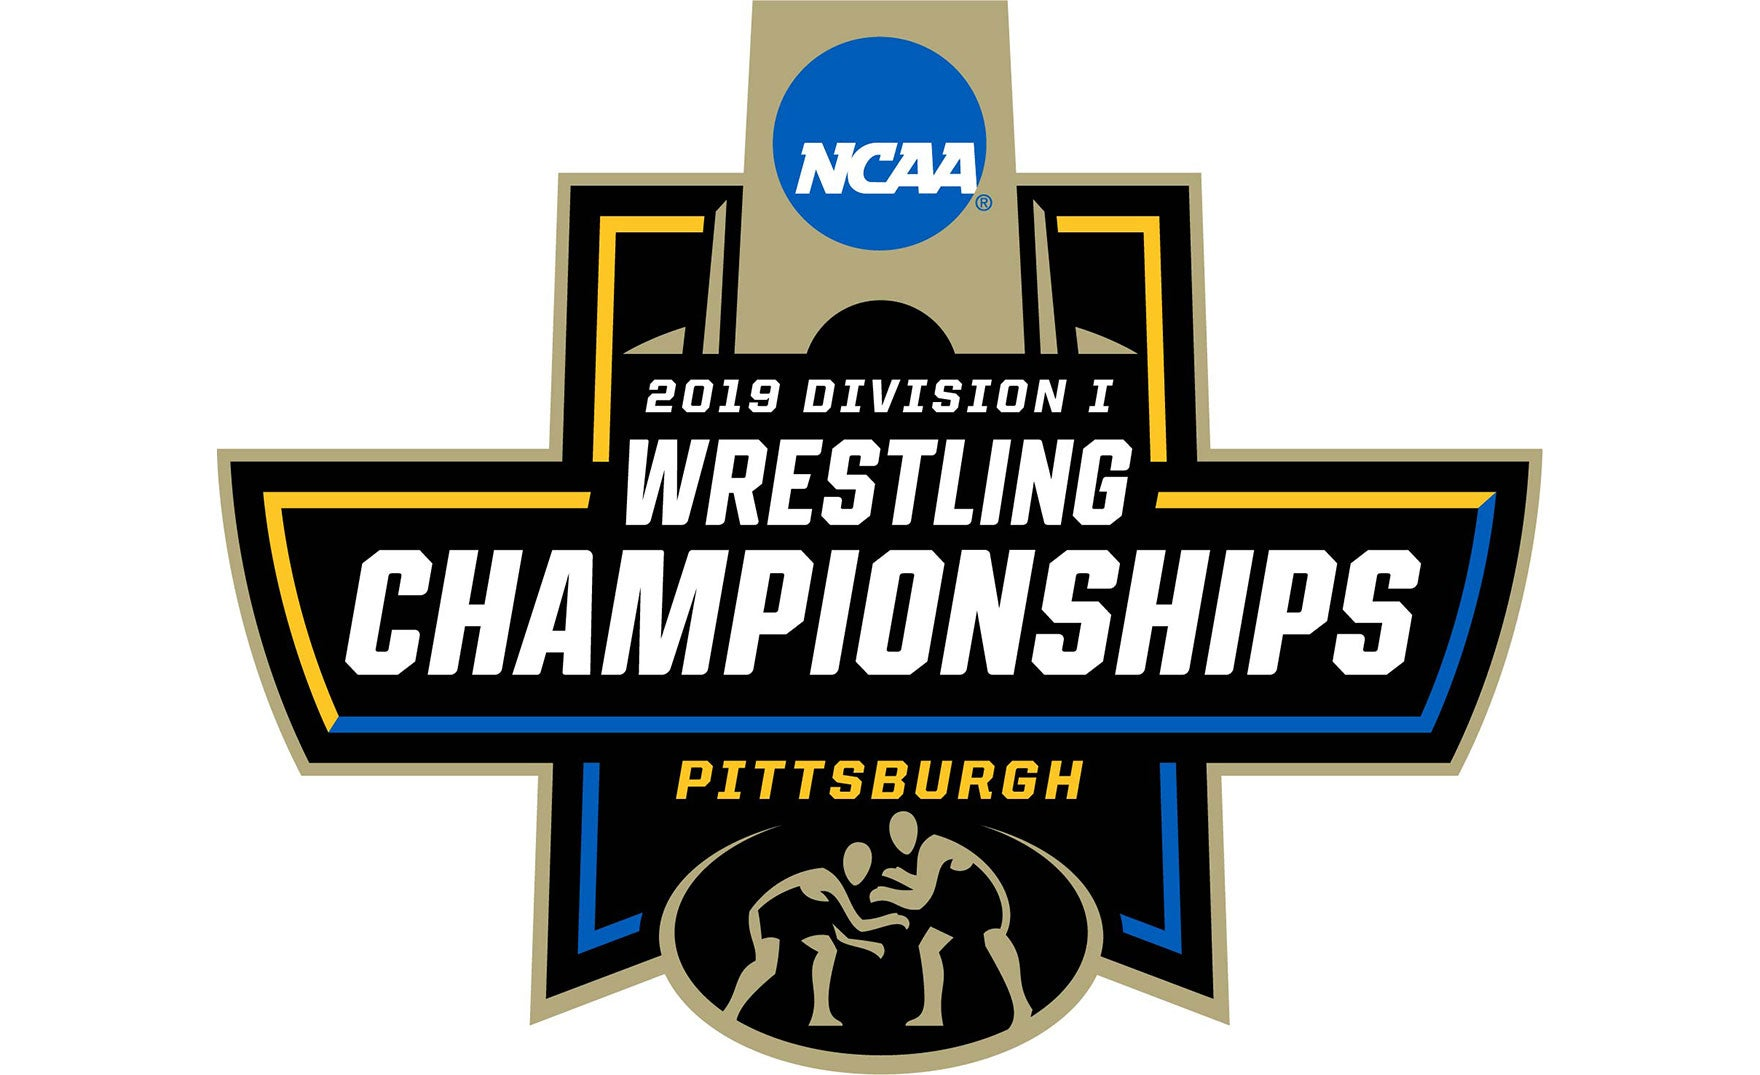 NCAA Division I Wrestling Championships